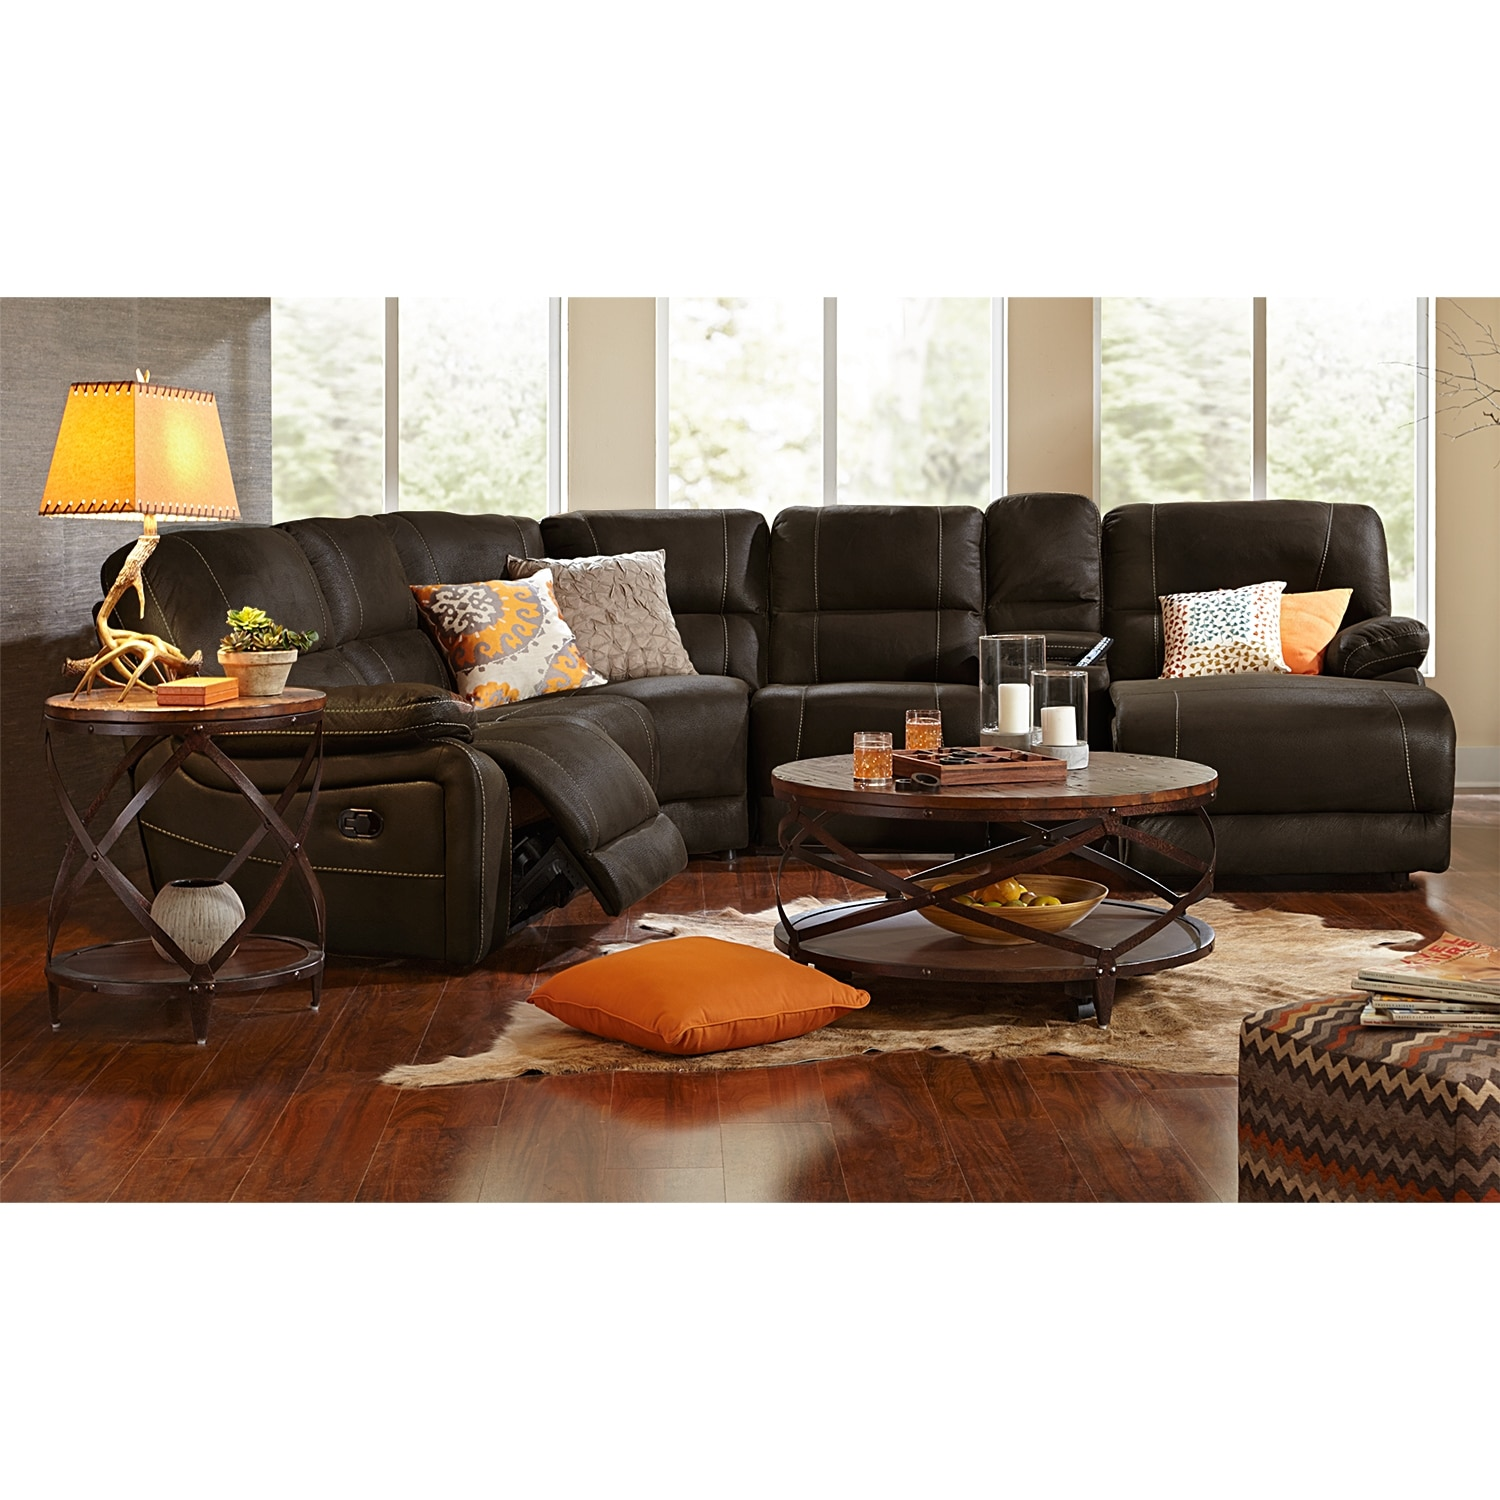 city furniture living room set value city furniture living room sets 18597